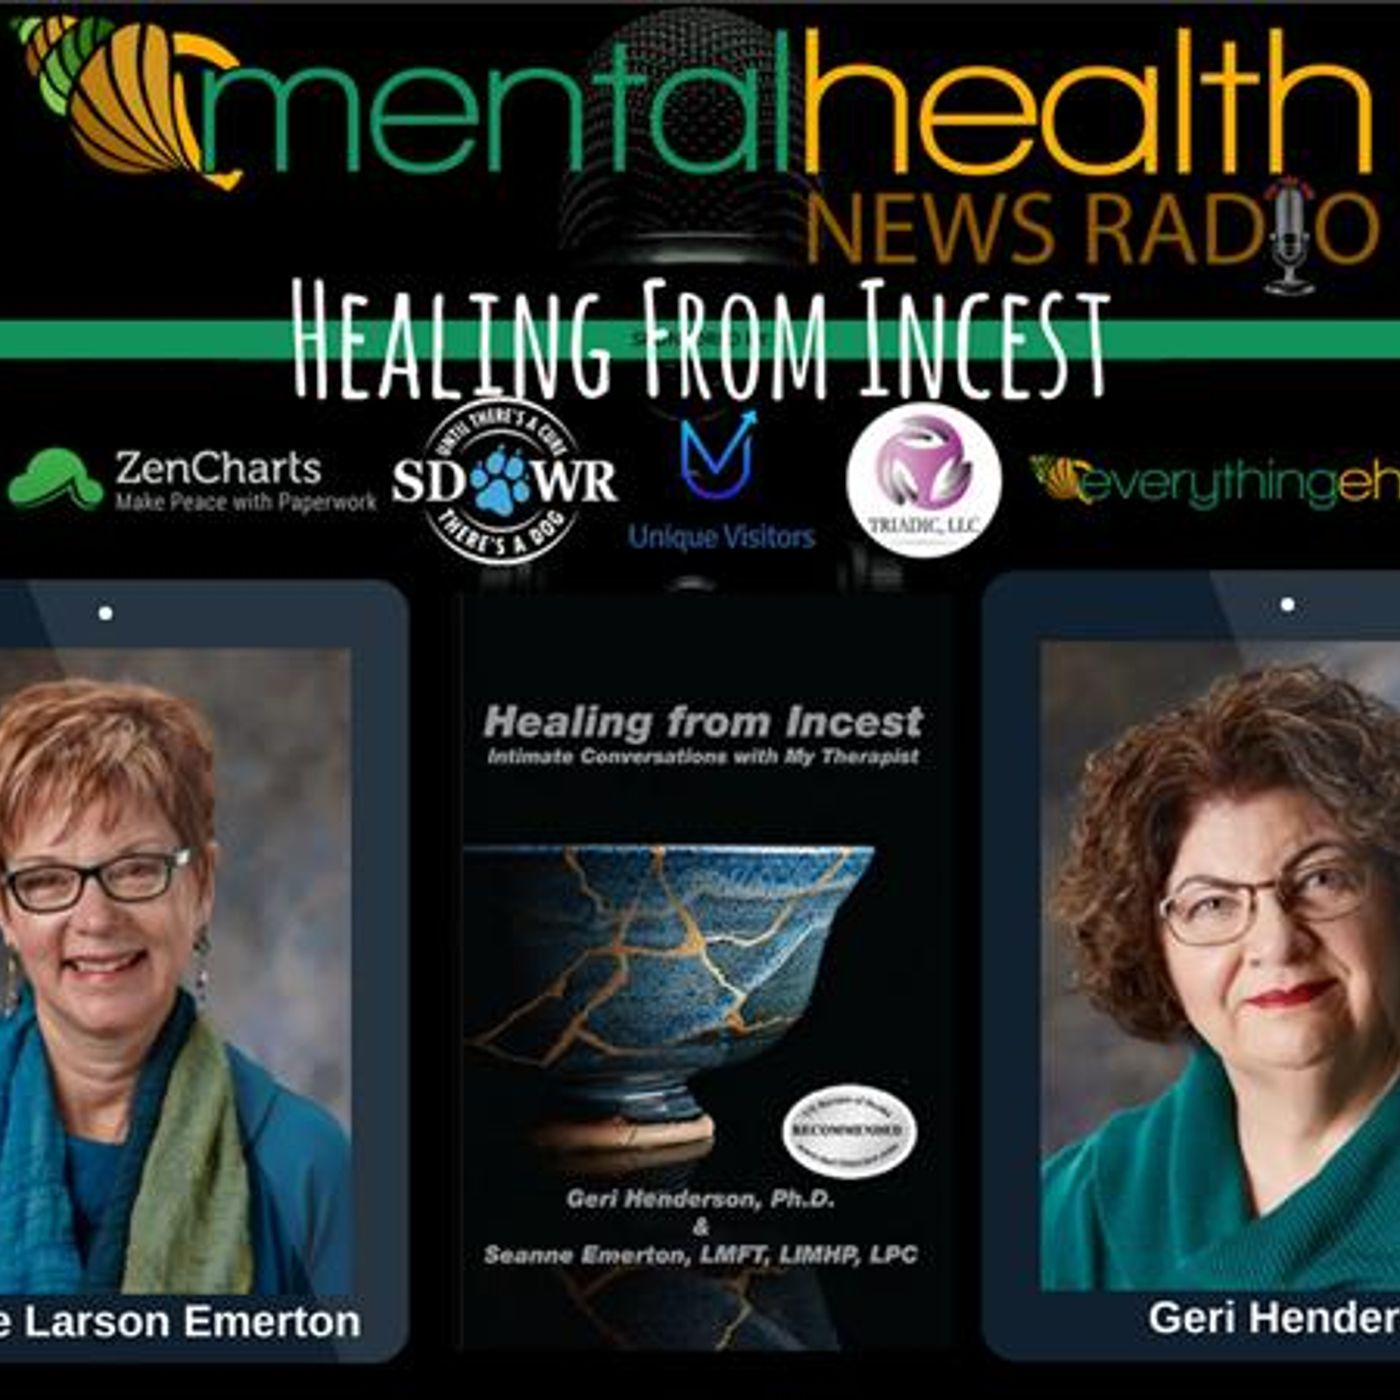 Mental Health News Radio - Healing from Incest: Intimate Conversations with My Therapist